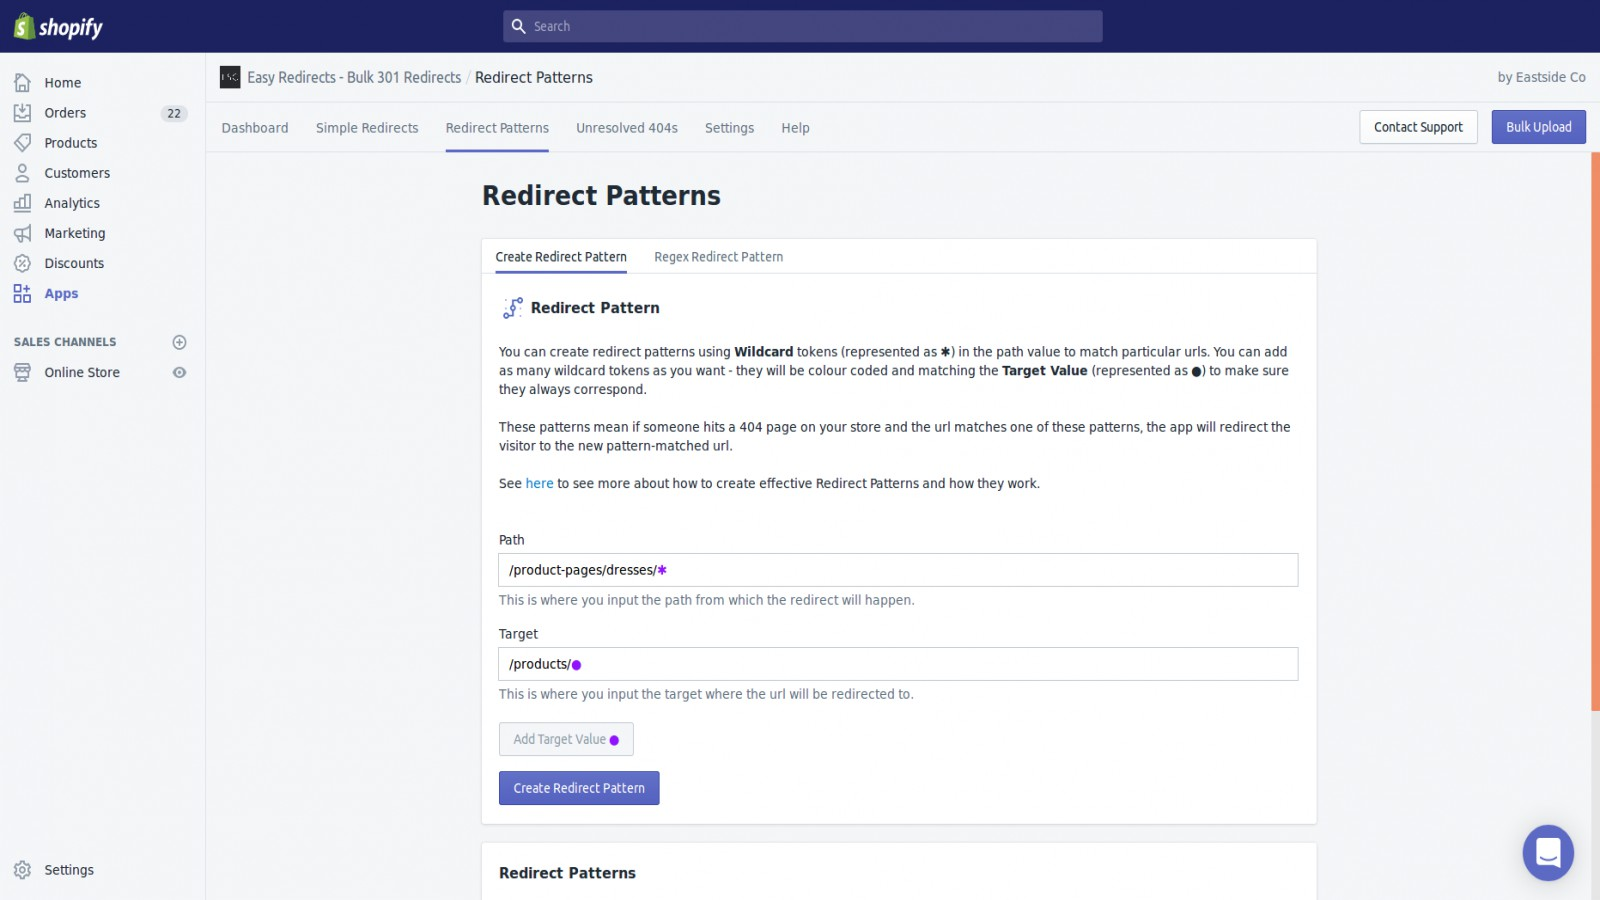 Redirect patterns let you automate redirects on an ongoing basis